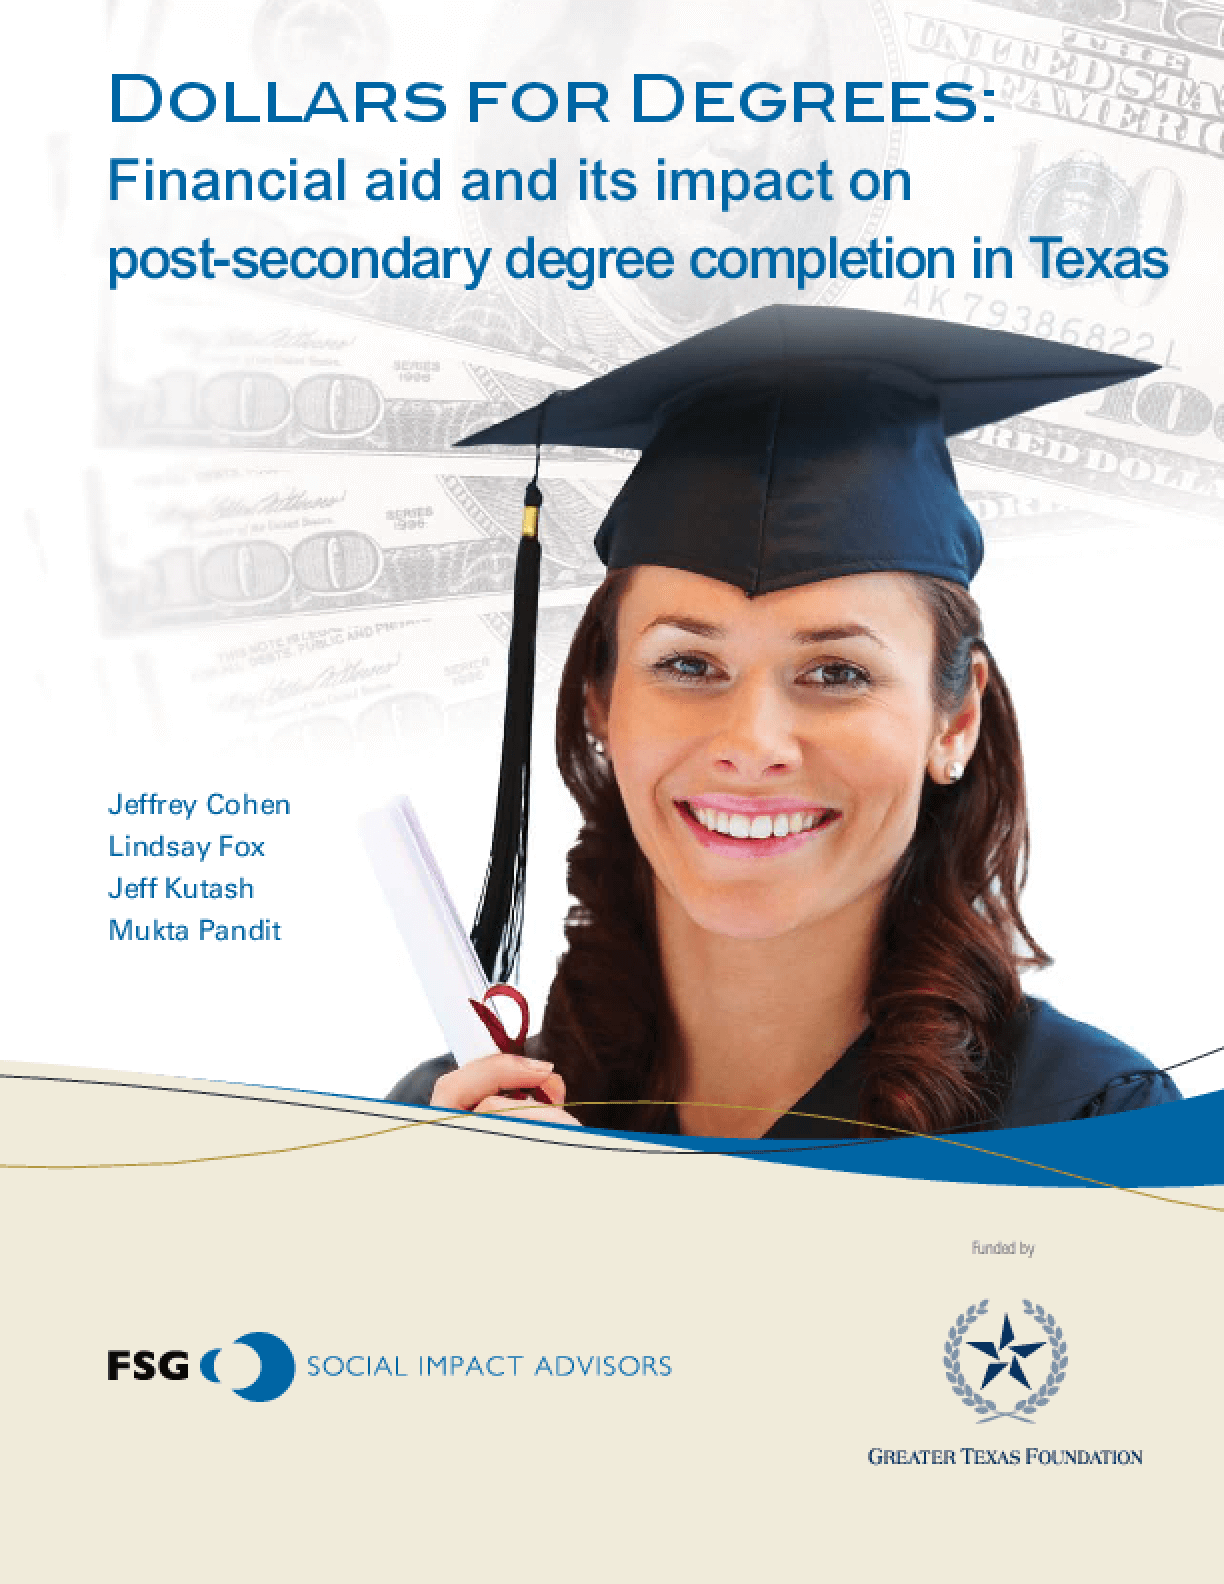 Dollars for Degrees: Financial Aid and its Impact on Post-Secondary Degree Completion in Texas